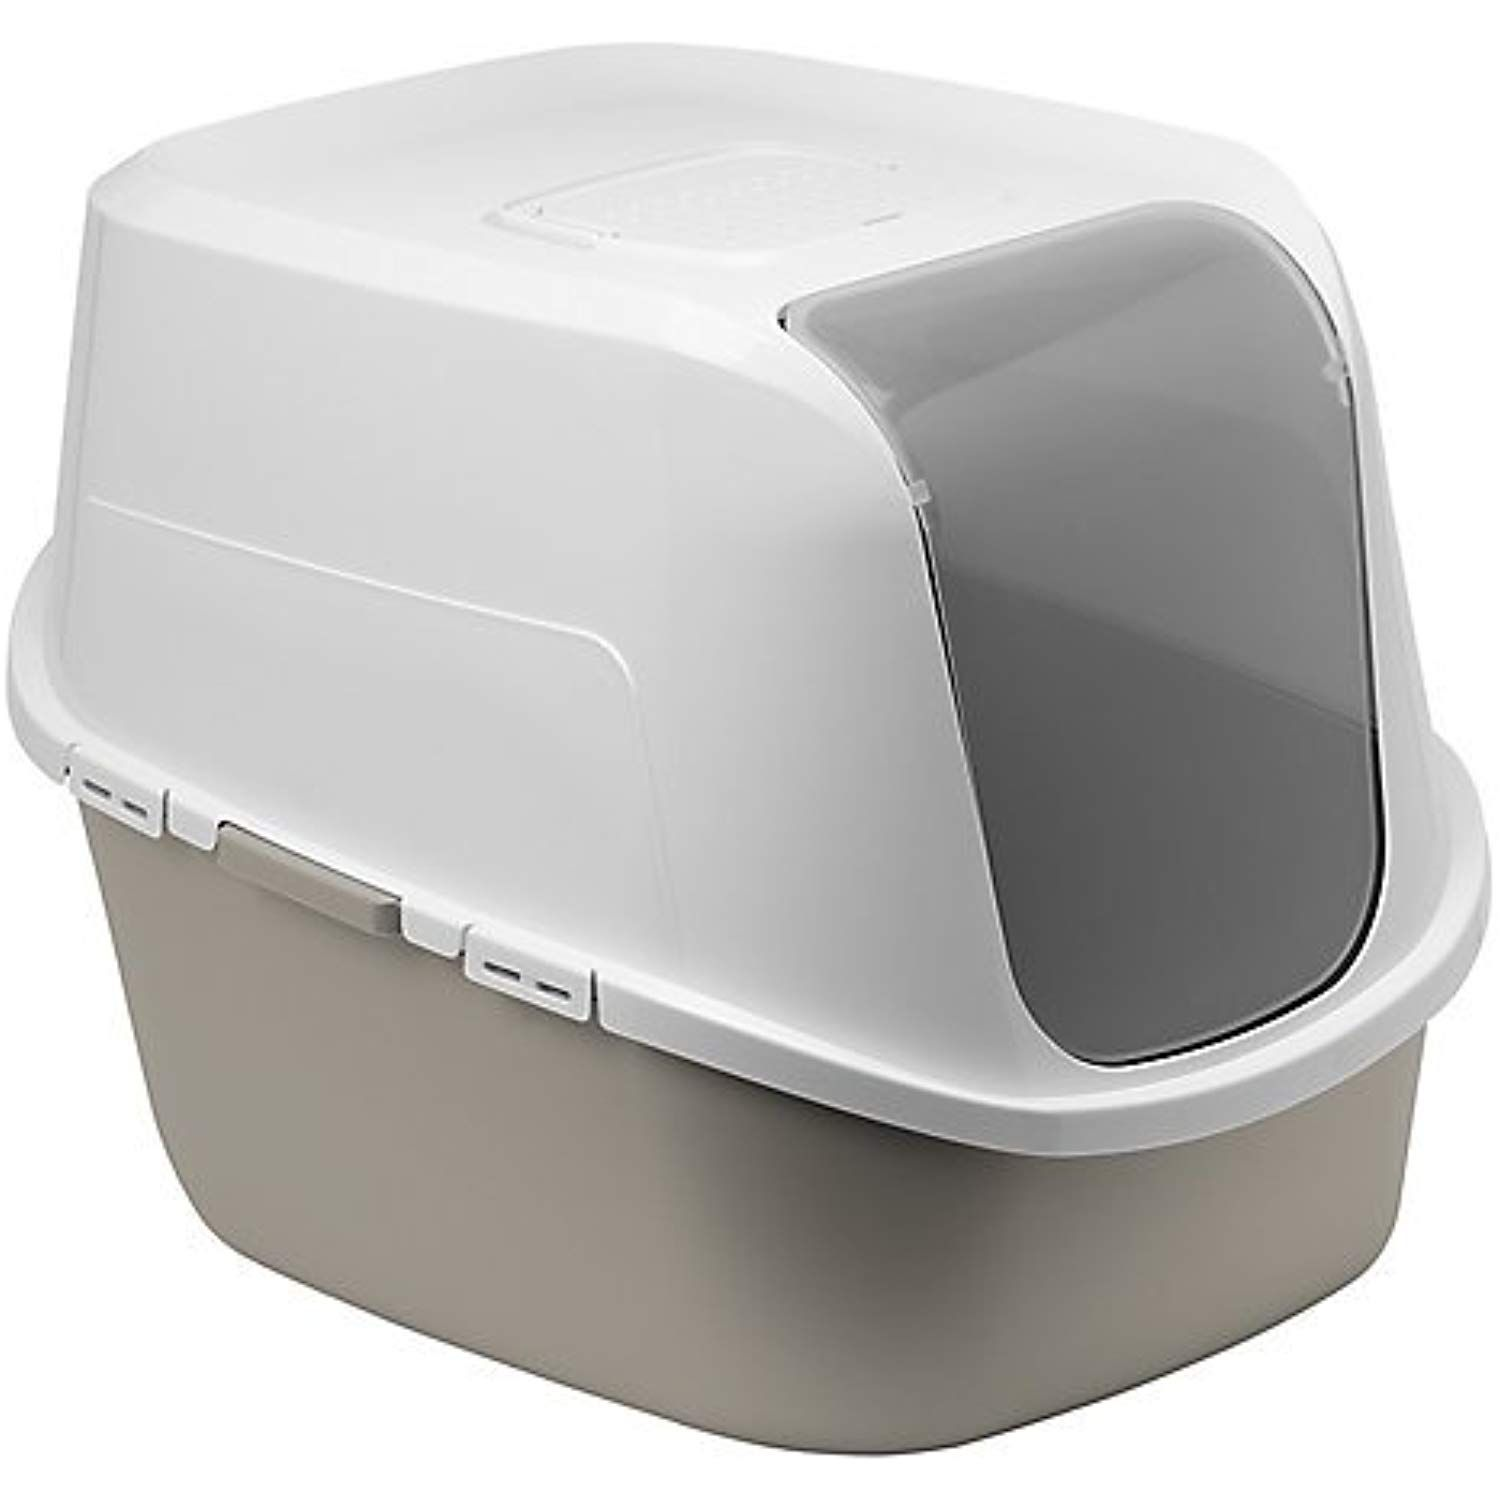 Moderna Amerix Closed Cat Litter Box Details Can Be Found By Clicking On The Image This Is An Affiliate Link Cat Litter Cat Litter Box Litter Box